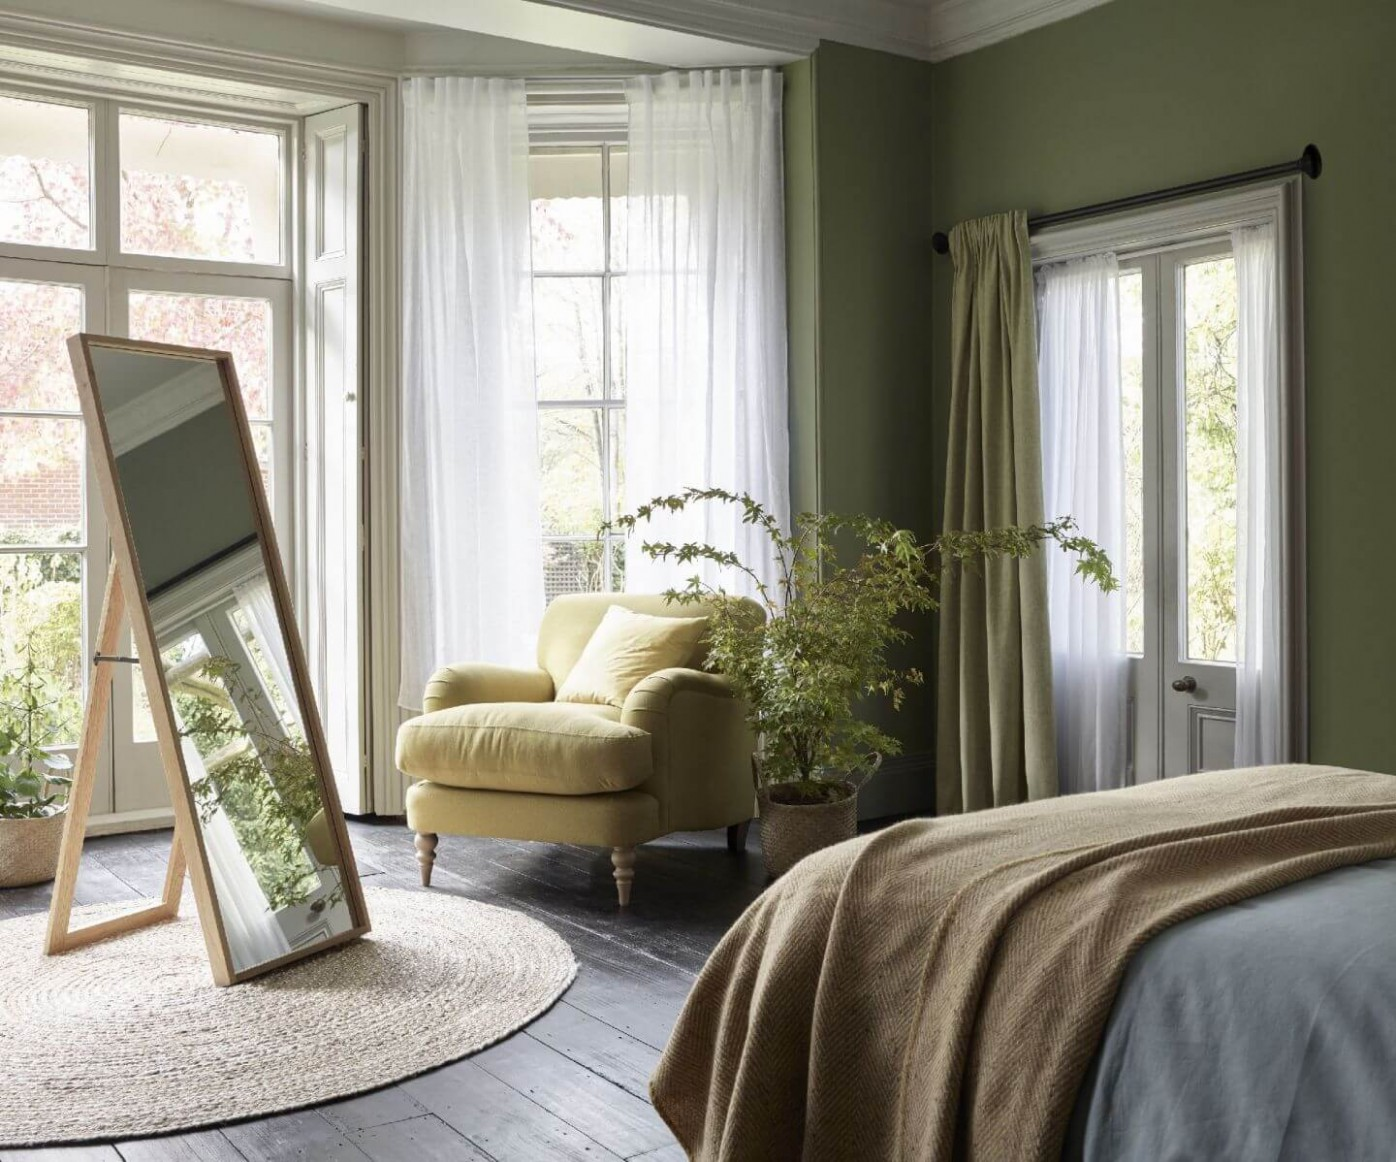 The Best Curtain Ideas for Bedroom Windows - Curtains Up Blog  - Window Ideas Bedroom